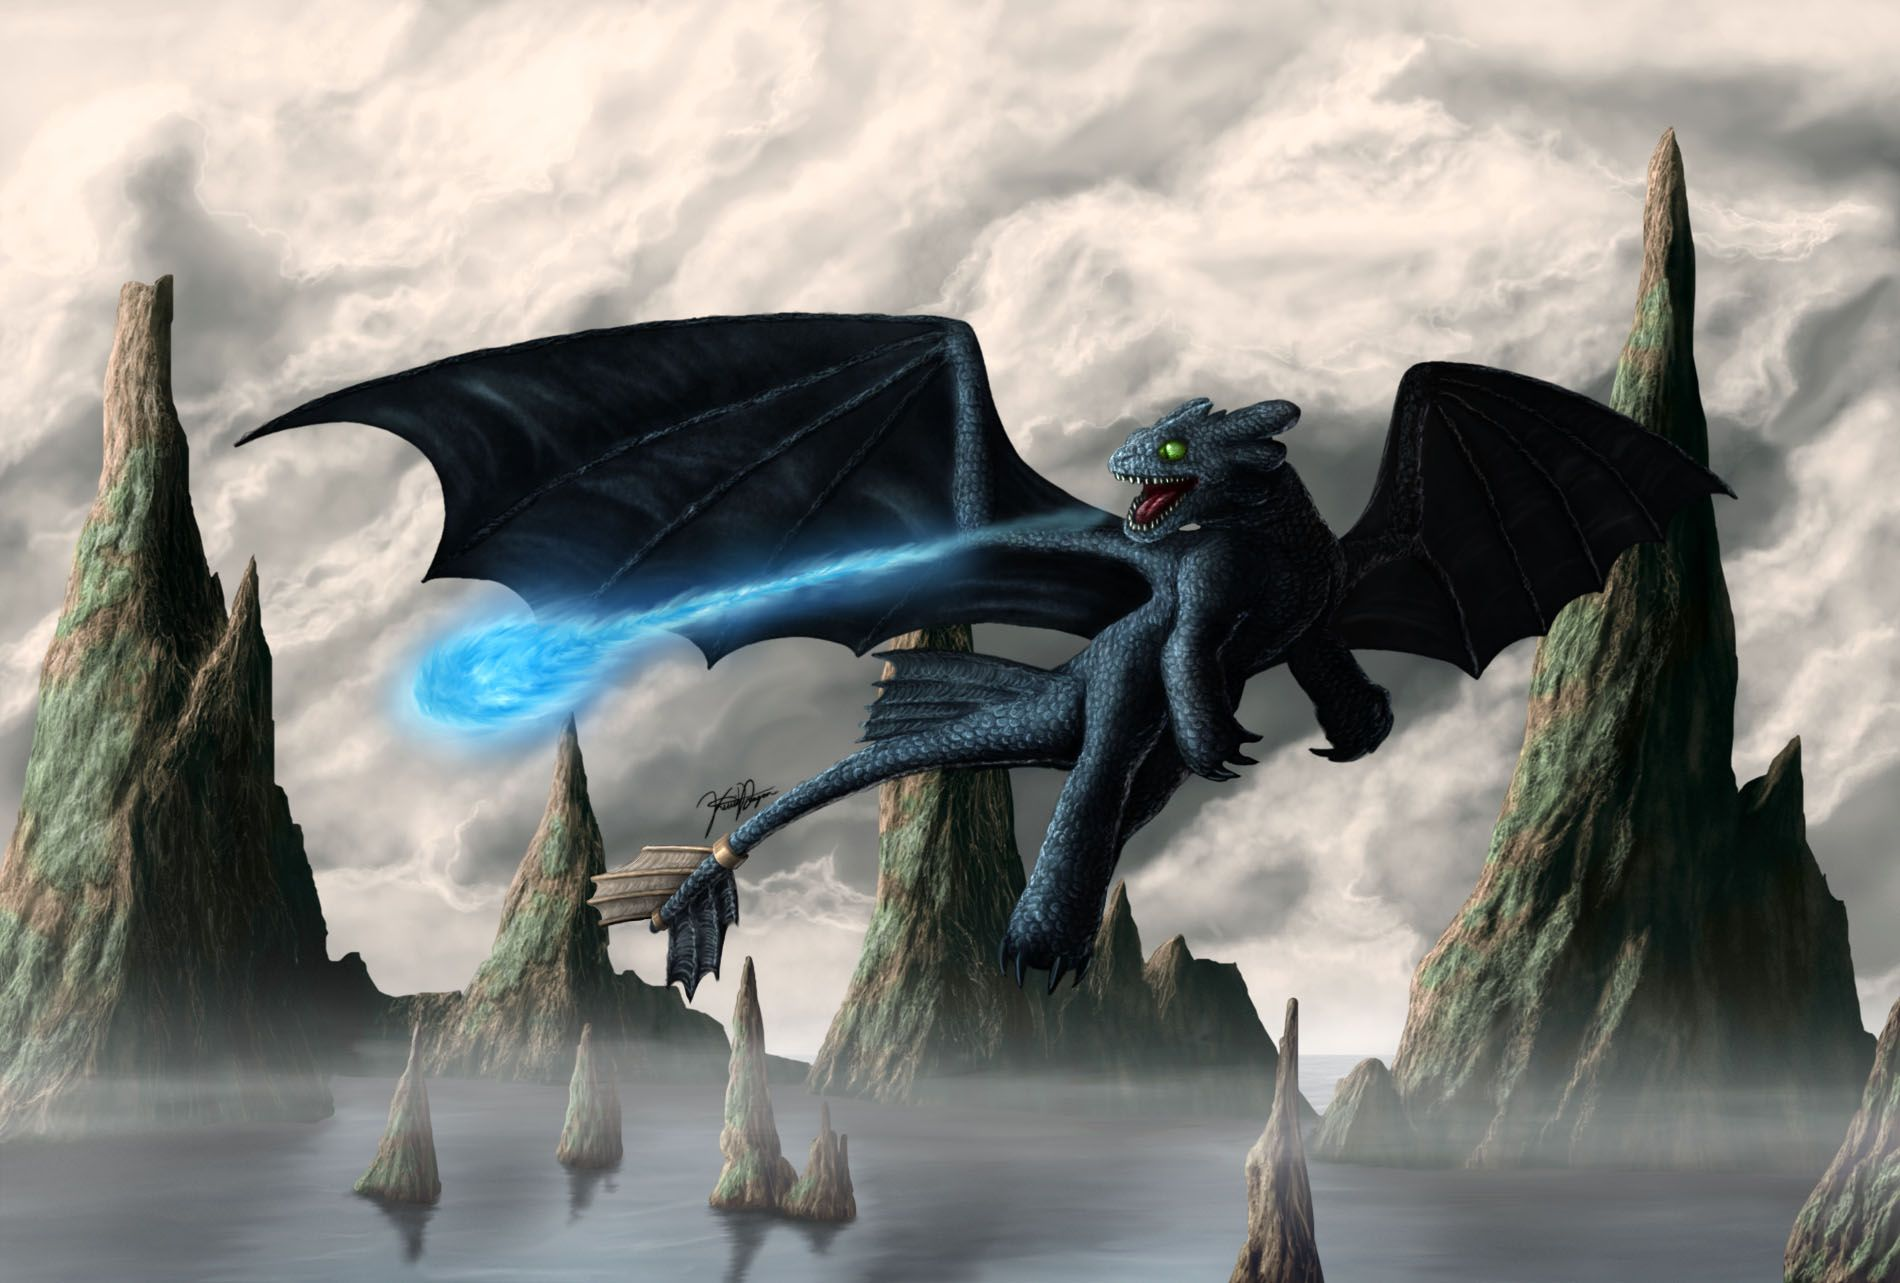 Download free toothless wallpapers for your mobile phone Zedge 1768 ...